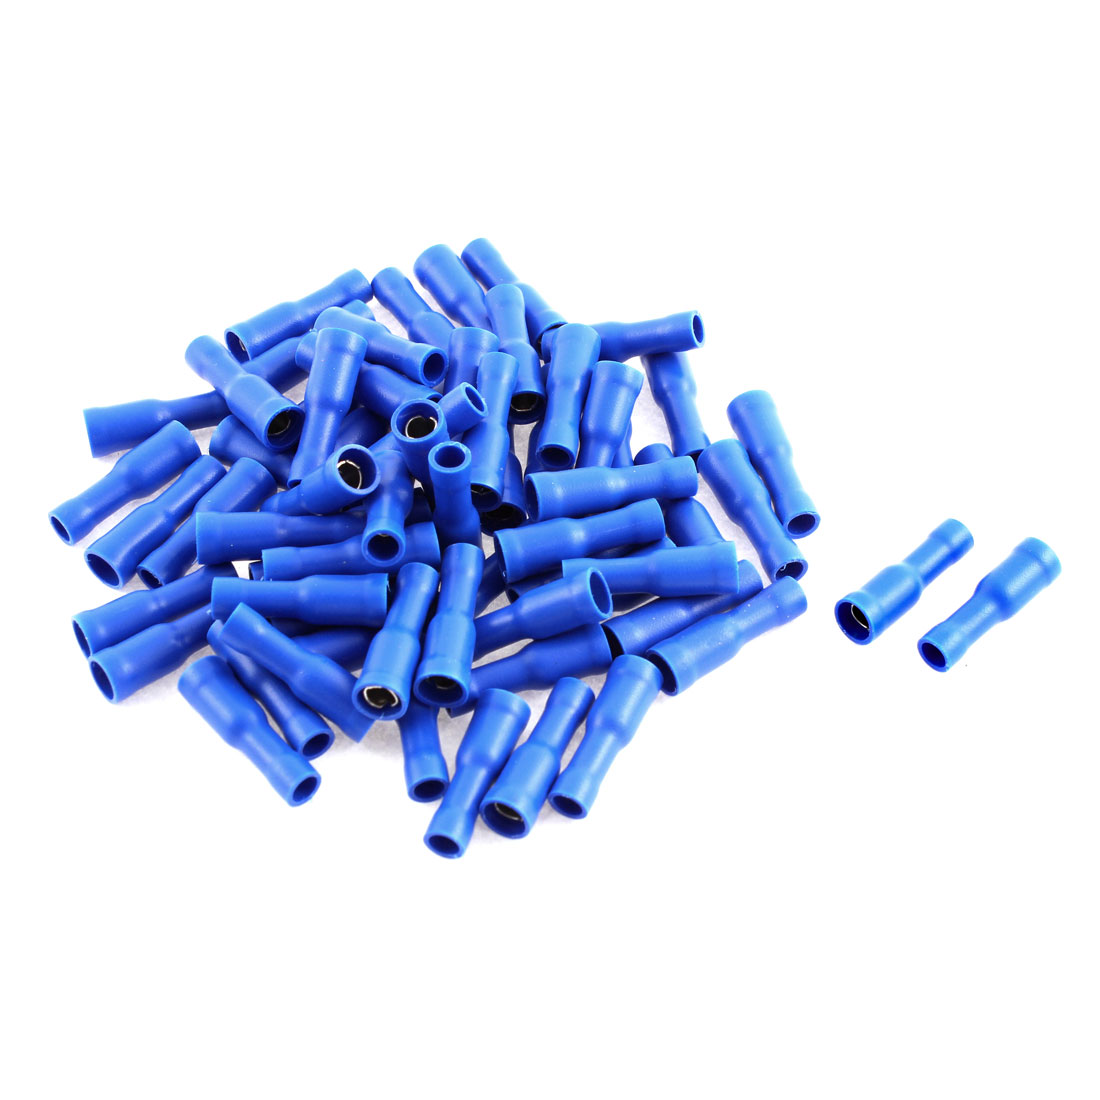 65pcs Blue Insulated Female Spade Crimp Terminal Connector for 16-14 AWG